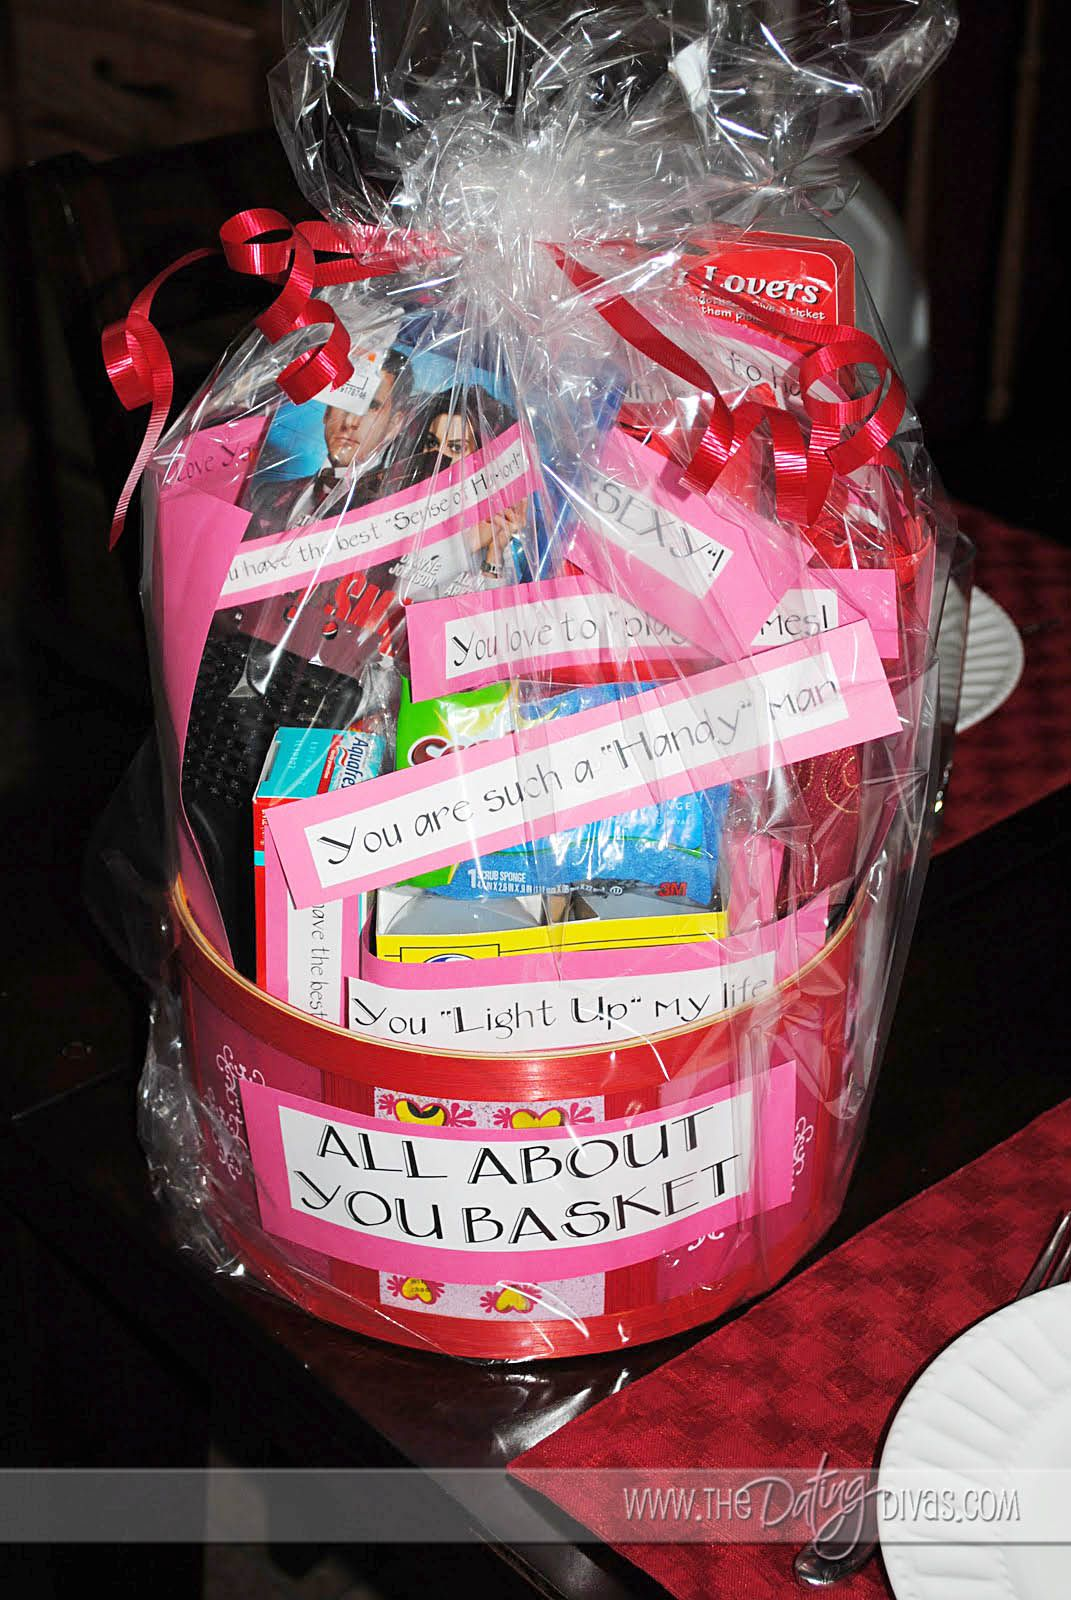 all about you basket anniversaries lisa and gift